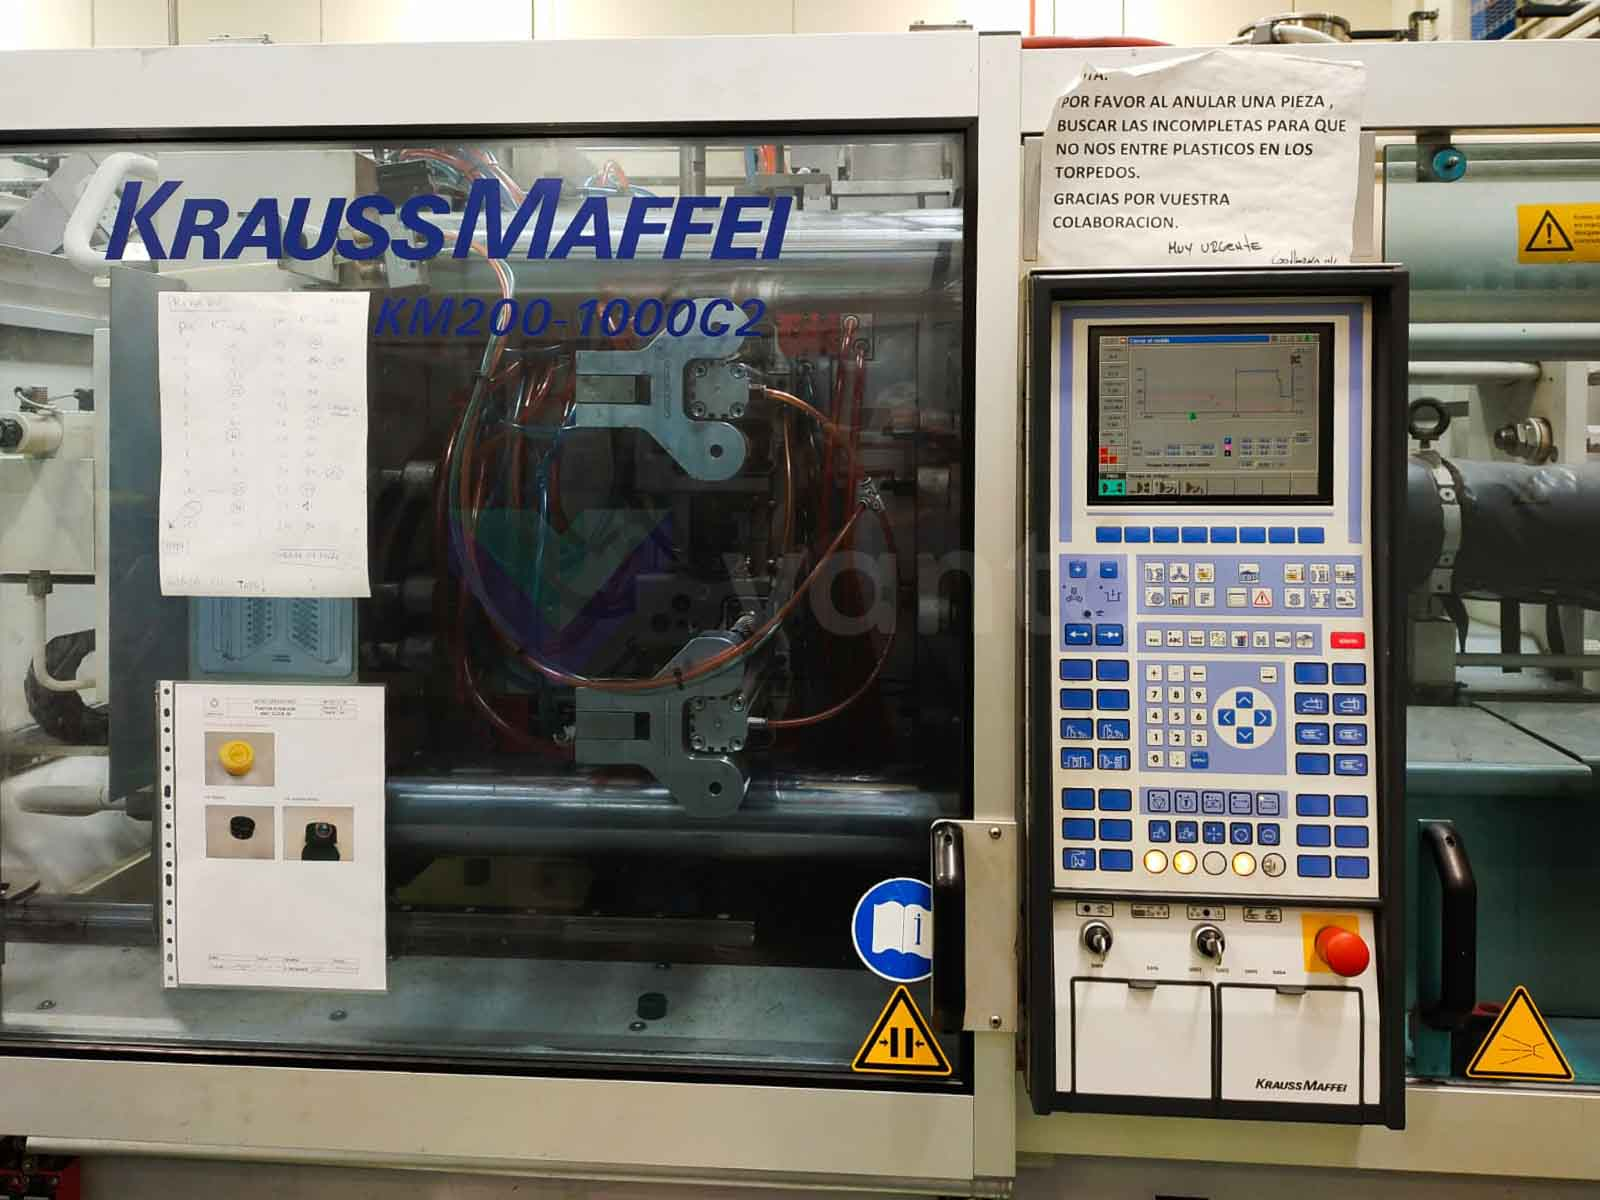 KRAUSS MAFFEI KM 200-1000 C2/200 200t injection molding machine (2005) id10547